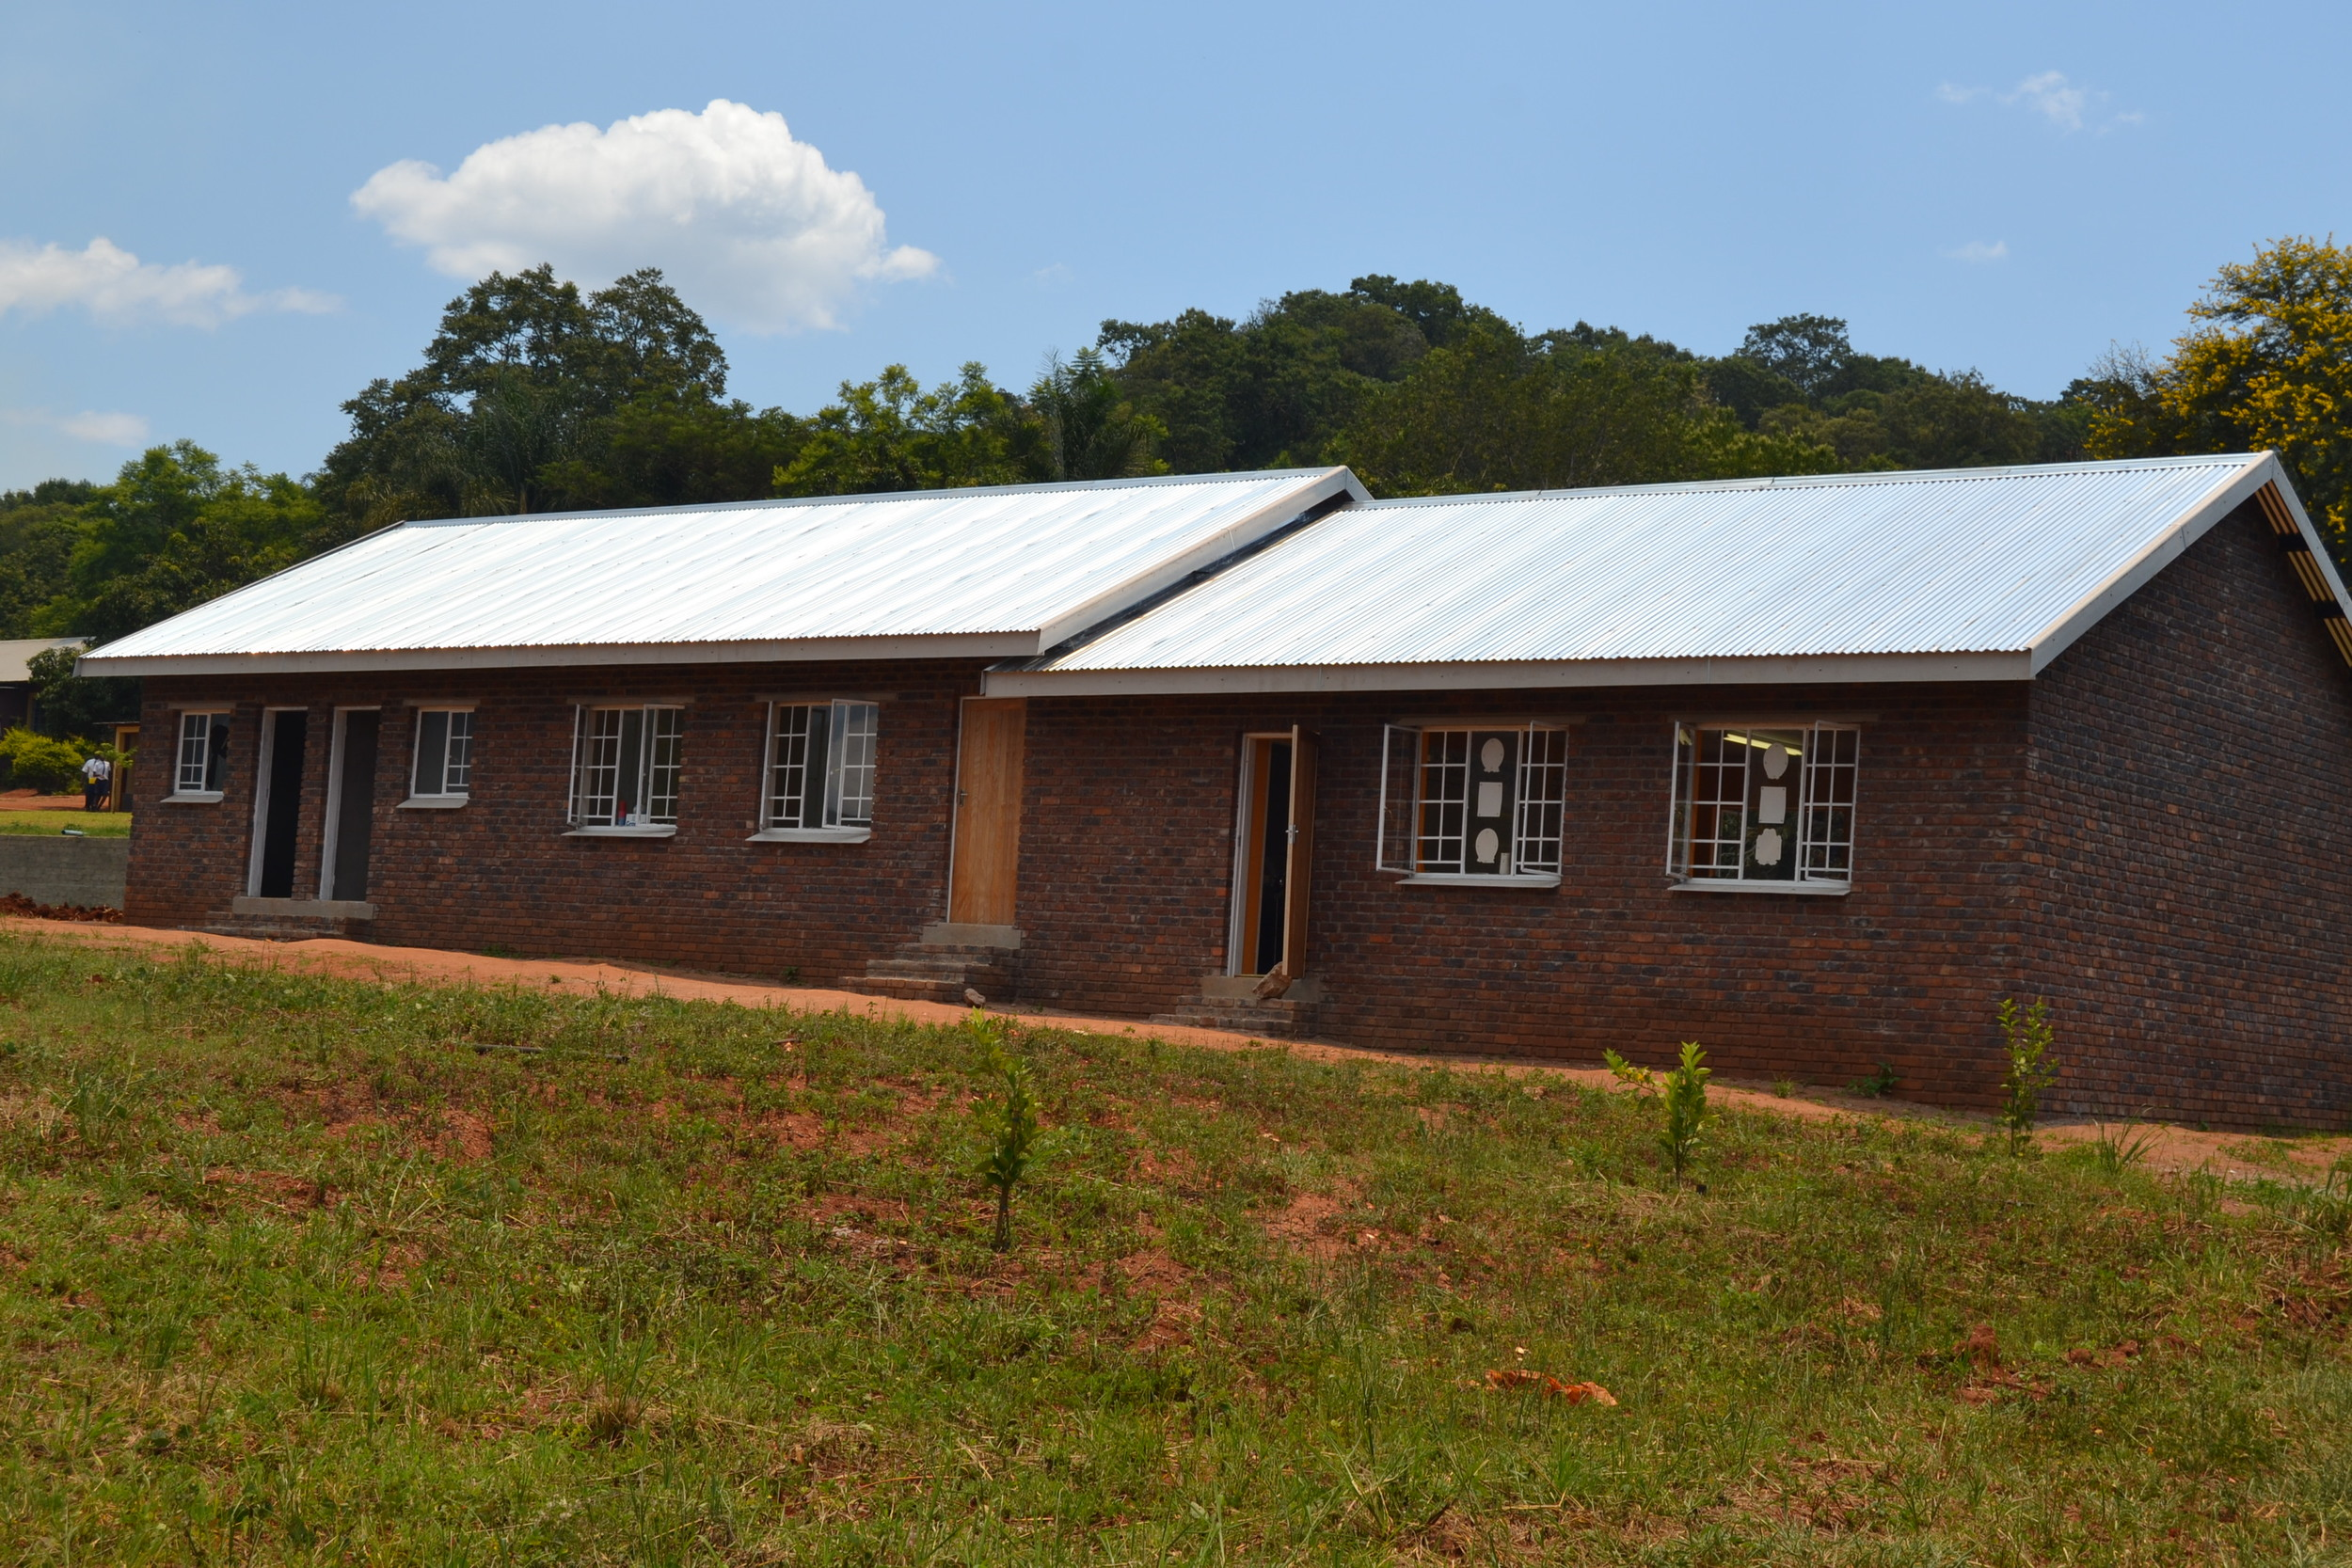 First two classrooms of four needed - built 2014